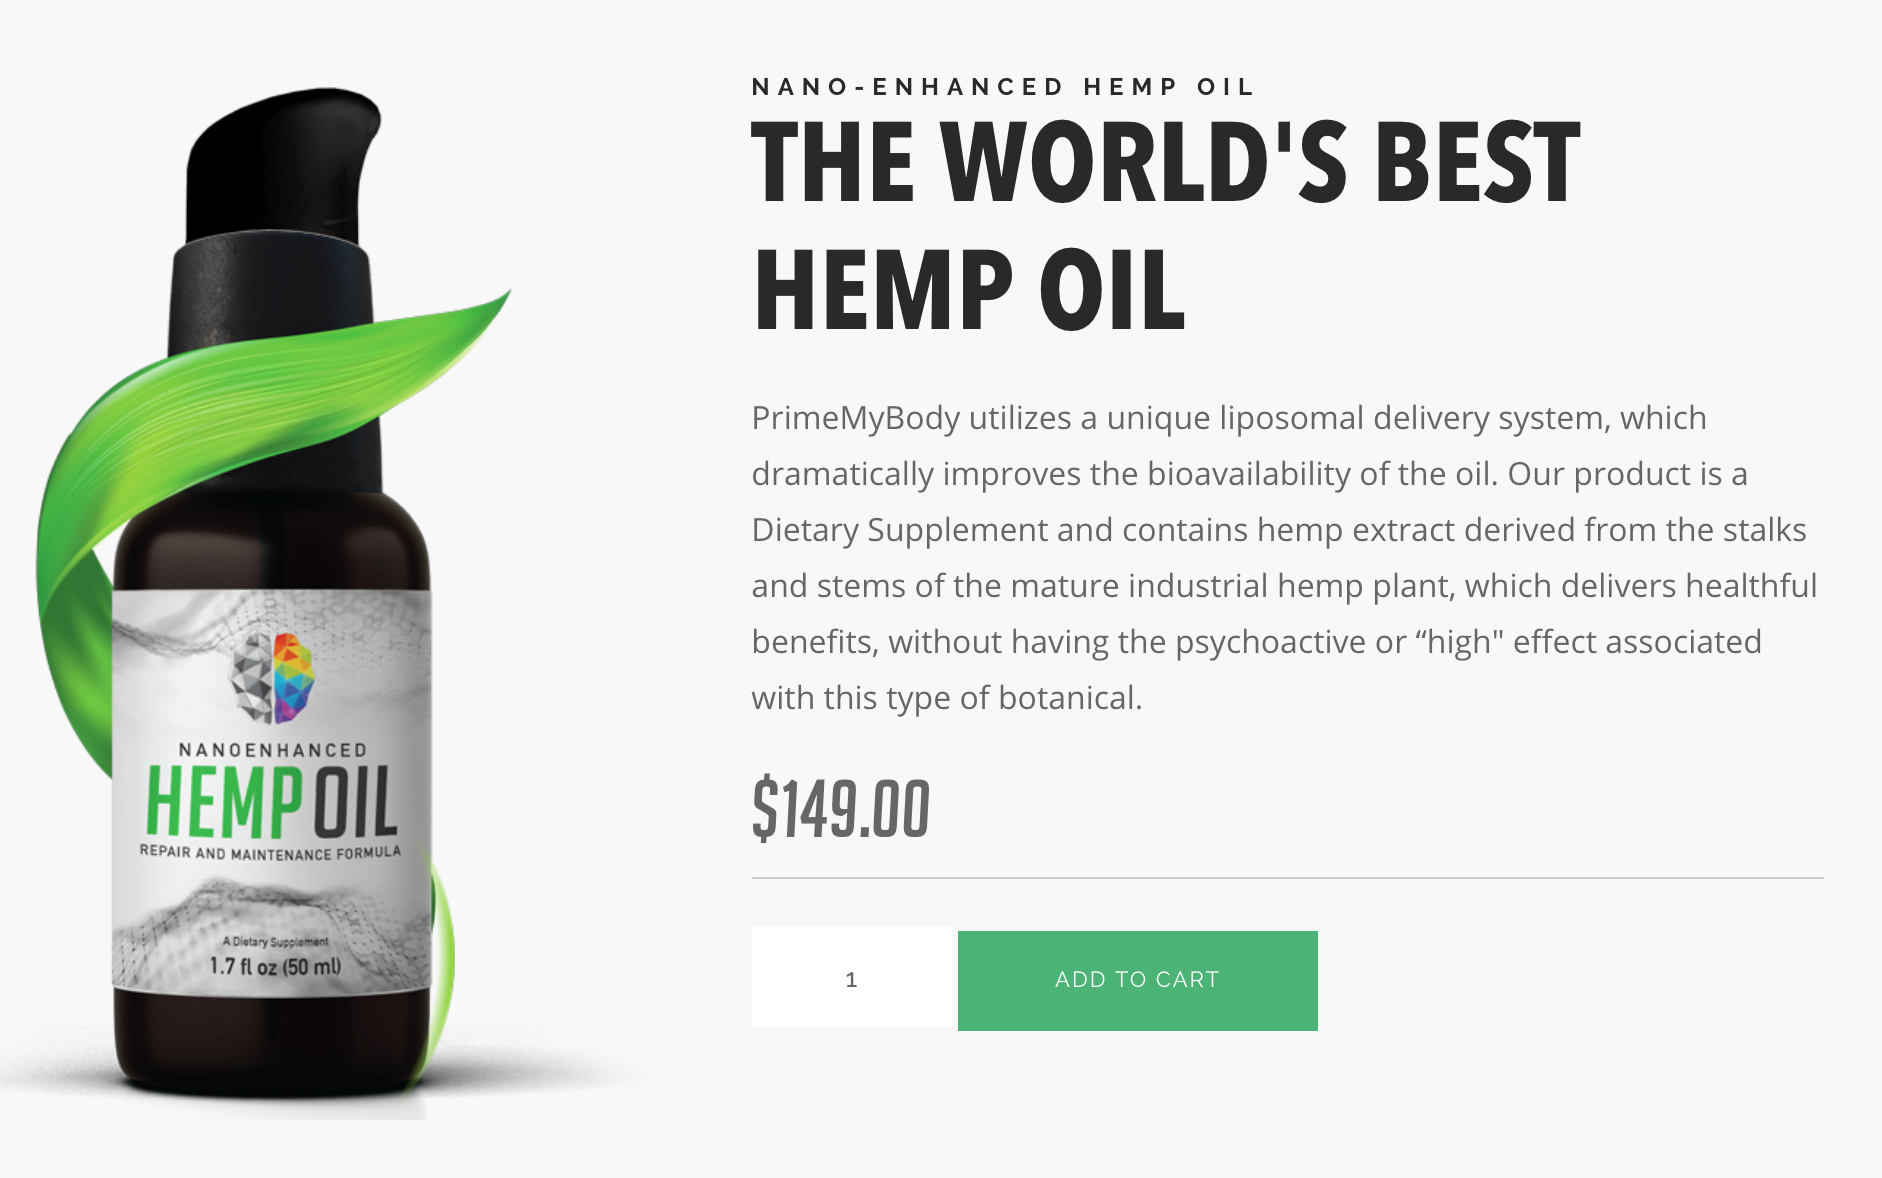 - NEW NanoEnhanced Hemp Oil: I've personally encountered the life-transforming effects of this pain-relieving, anxiety-reducing oil. It's LEGAL in all 50 states. It's time to reclaim your health and get your life back!